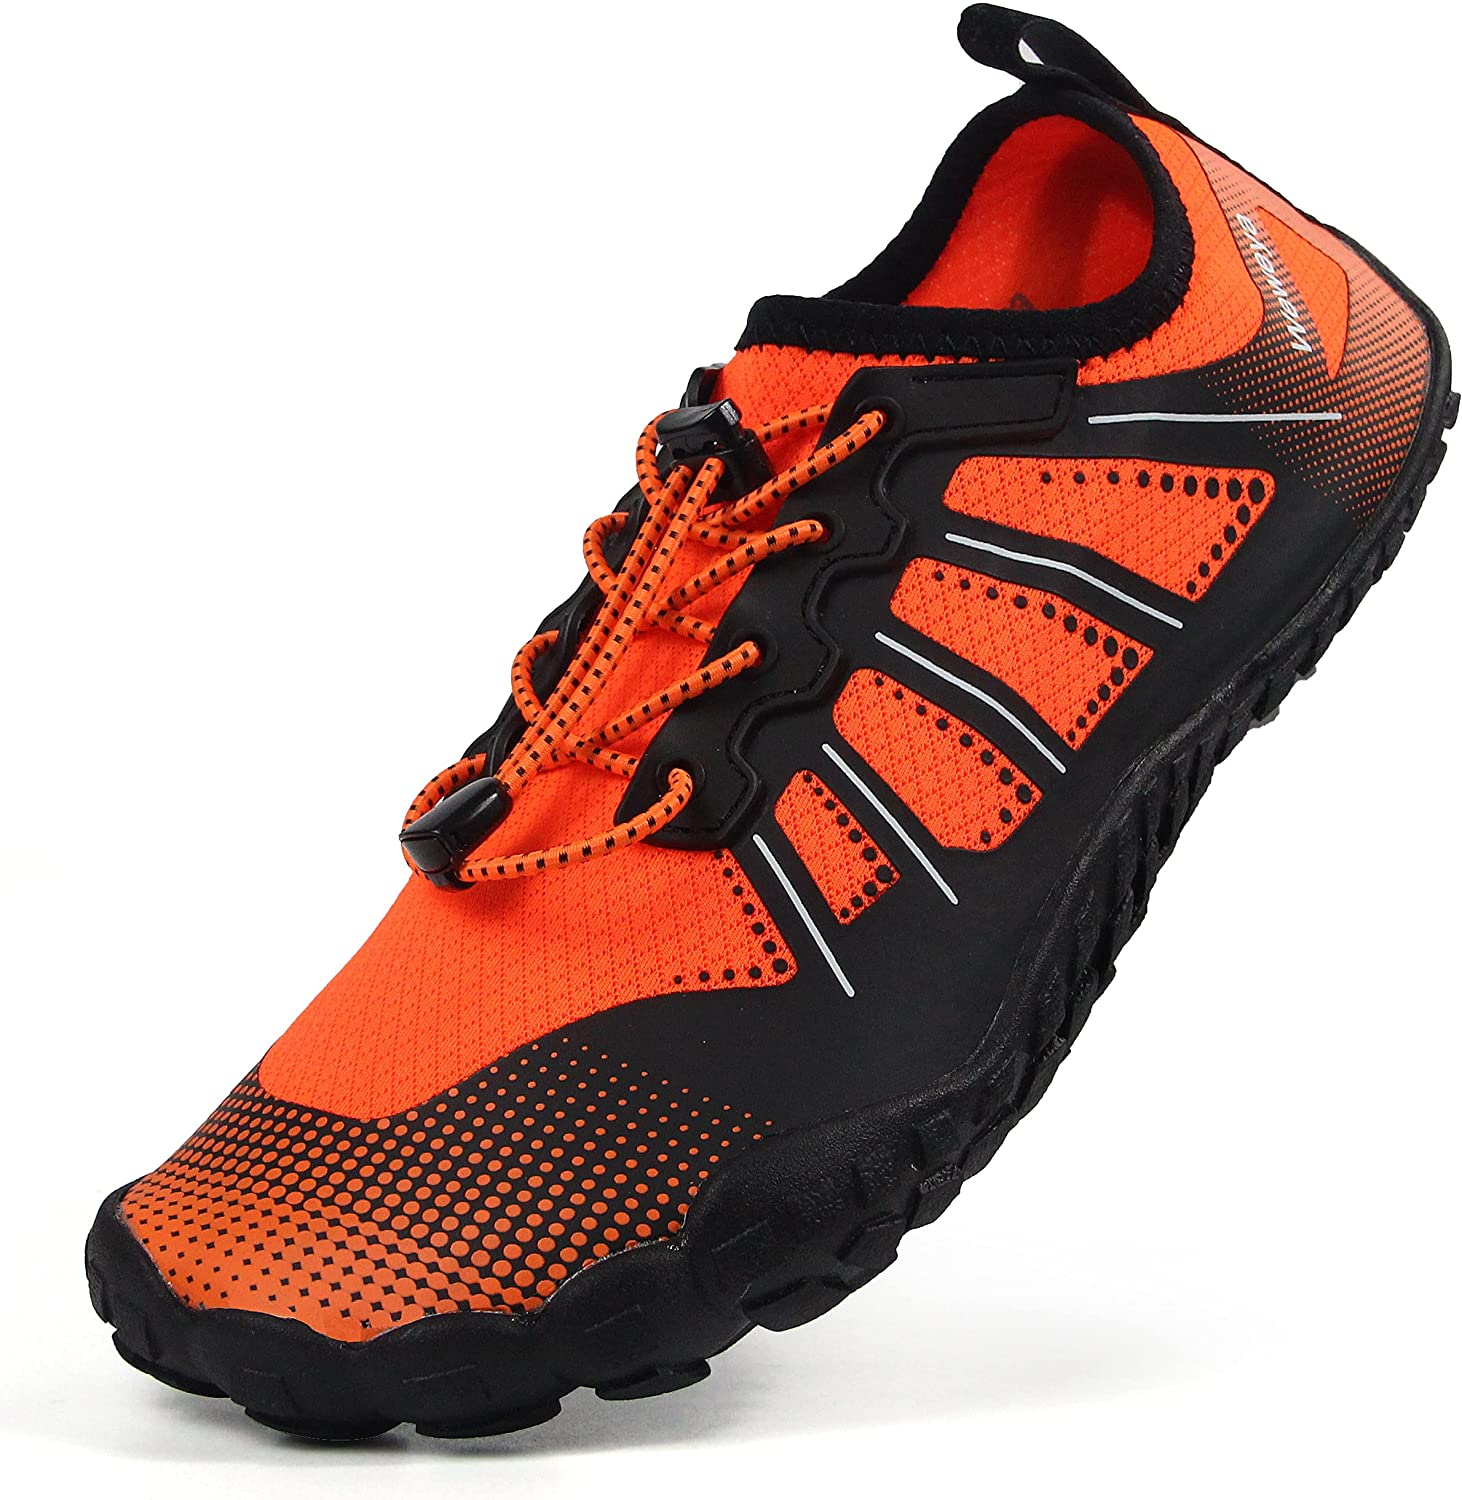 Weweya Men Women Water Shoes Barefoot Minimalist Beach Sports Shoes for Boating Fishing Diving Surfing Swimming